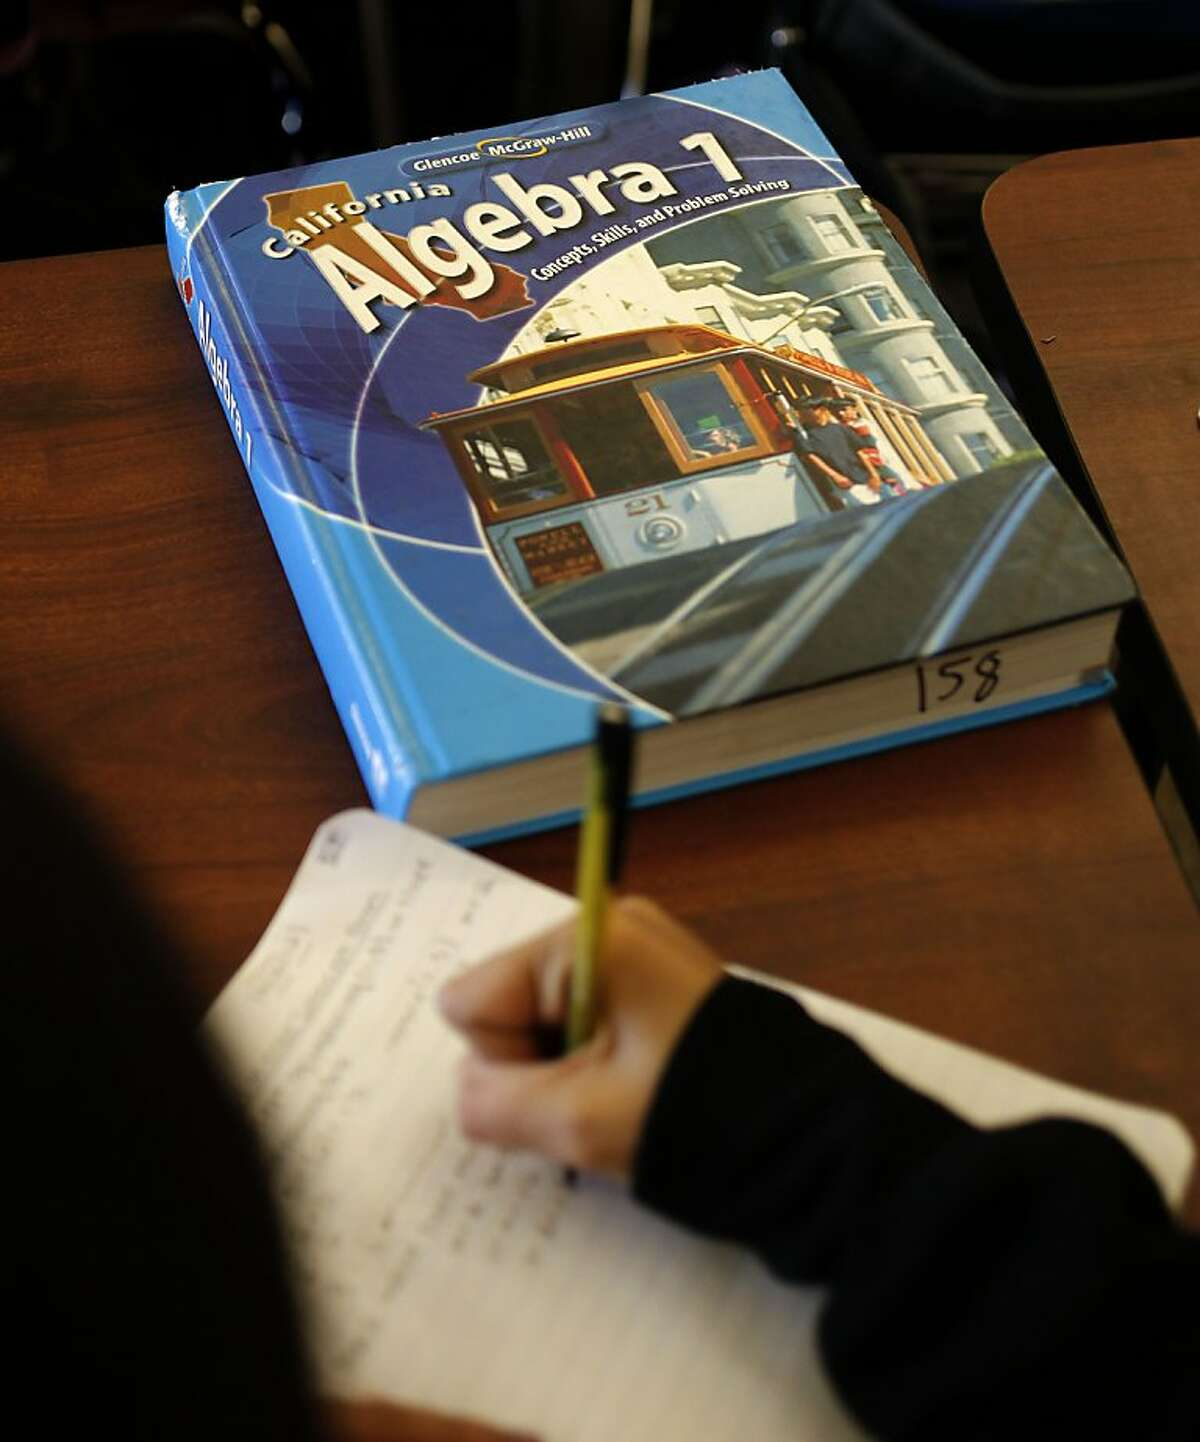 Eighth grade algebra text book at James Denman Middle School in San Francisco, Calif. on Friday Nov. 30, 2012. A new report by the Center for the Future of Teaching and Learning has found that students who fail algebra for the first time are pretty much destined to fail the second time, because they often take the same class the same way with the same teacher.